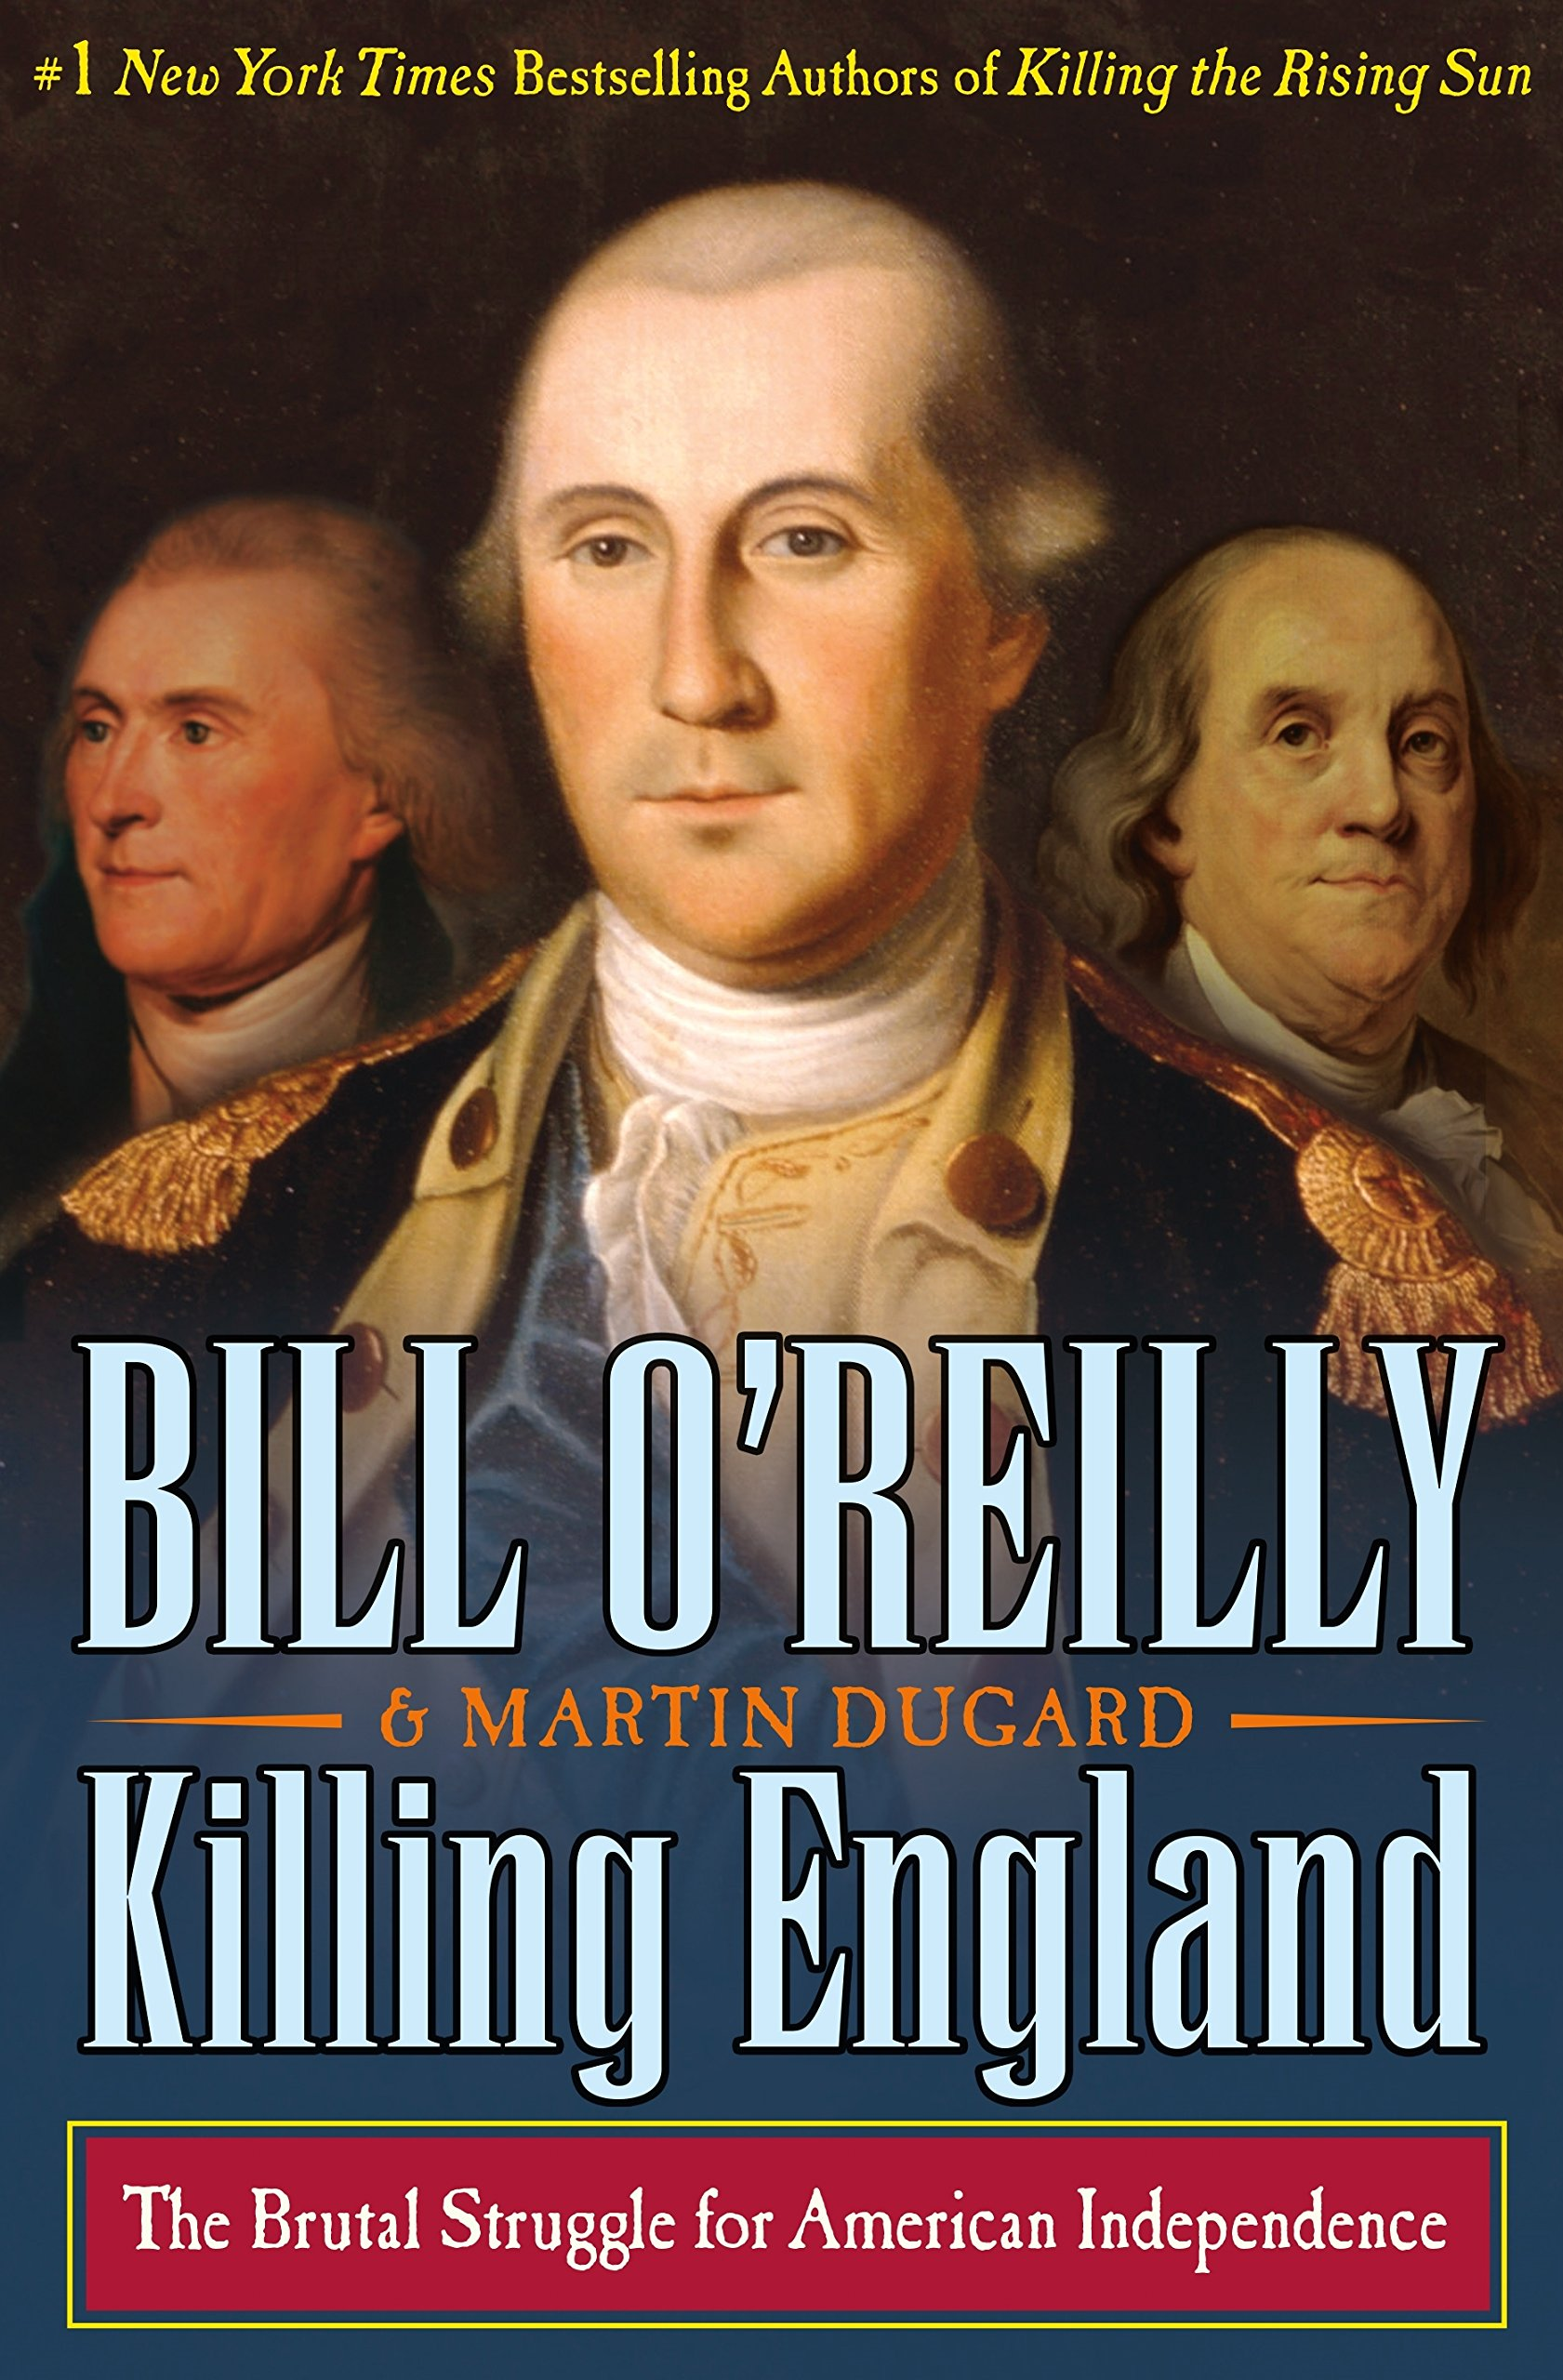 Killing England: the Brutal Struggle for American Independence